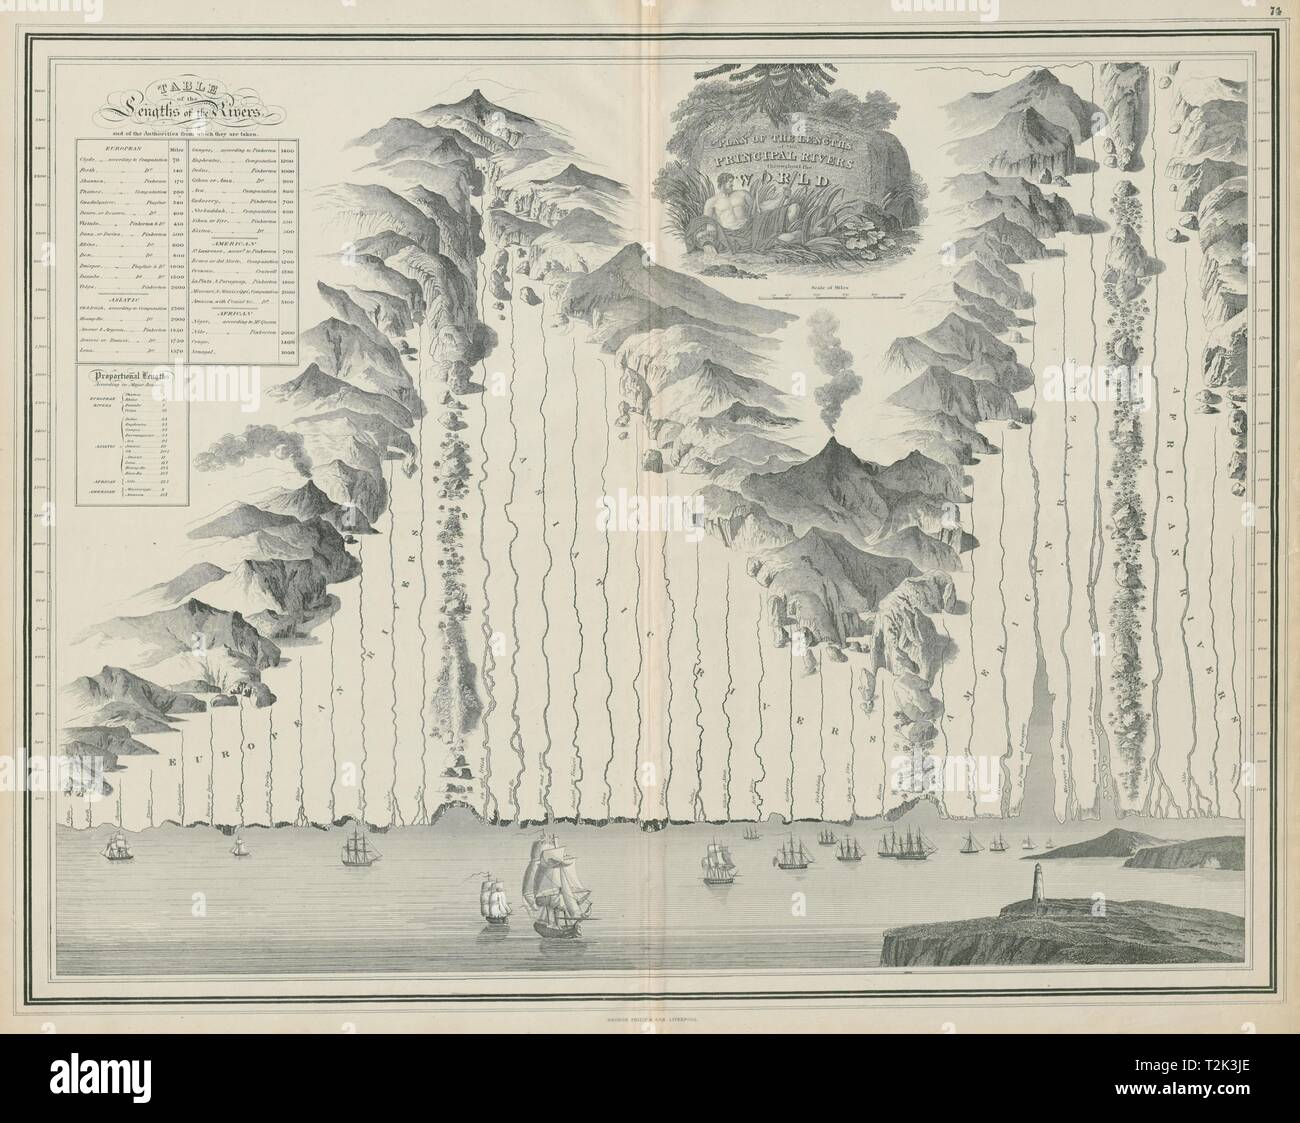 Plan of lengths of the Principal Rivers throughout the World. PHILIP c1853 map - Stock Image